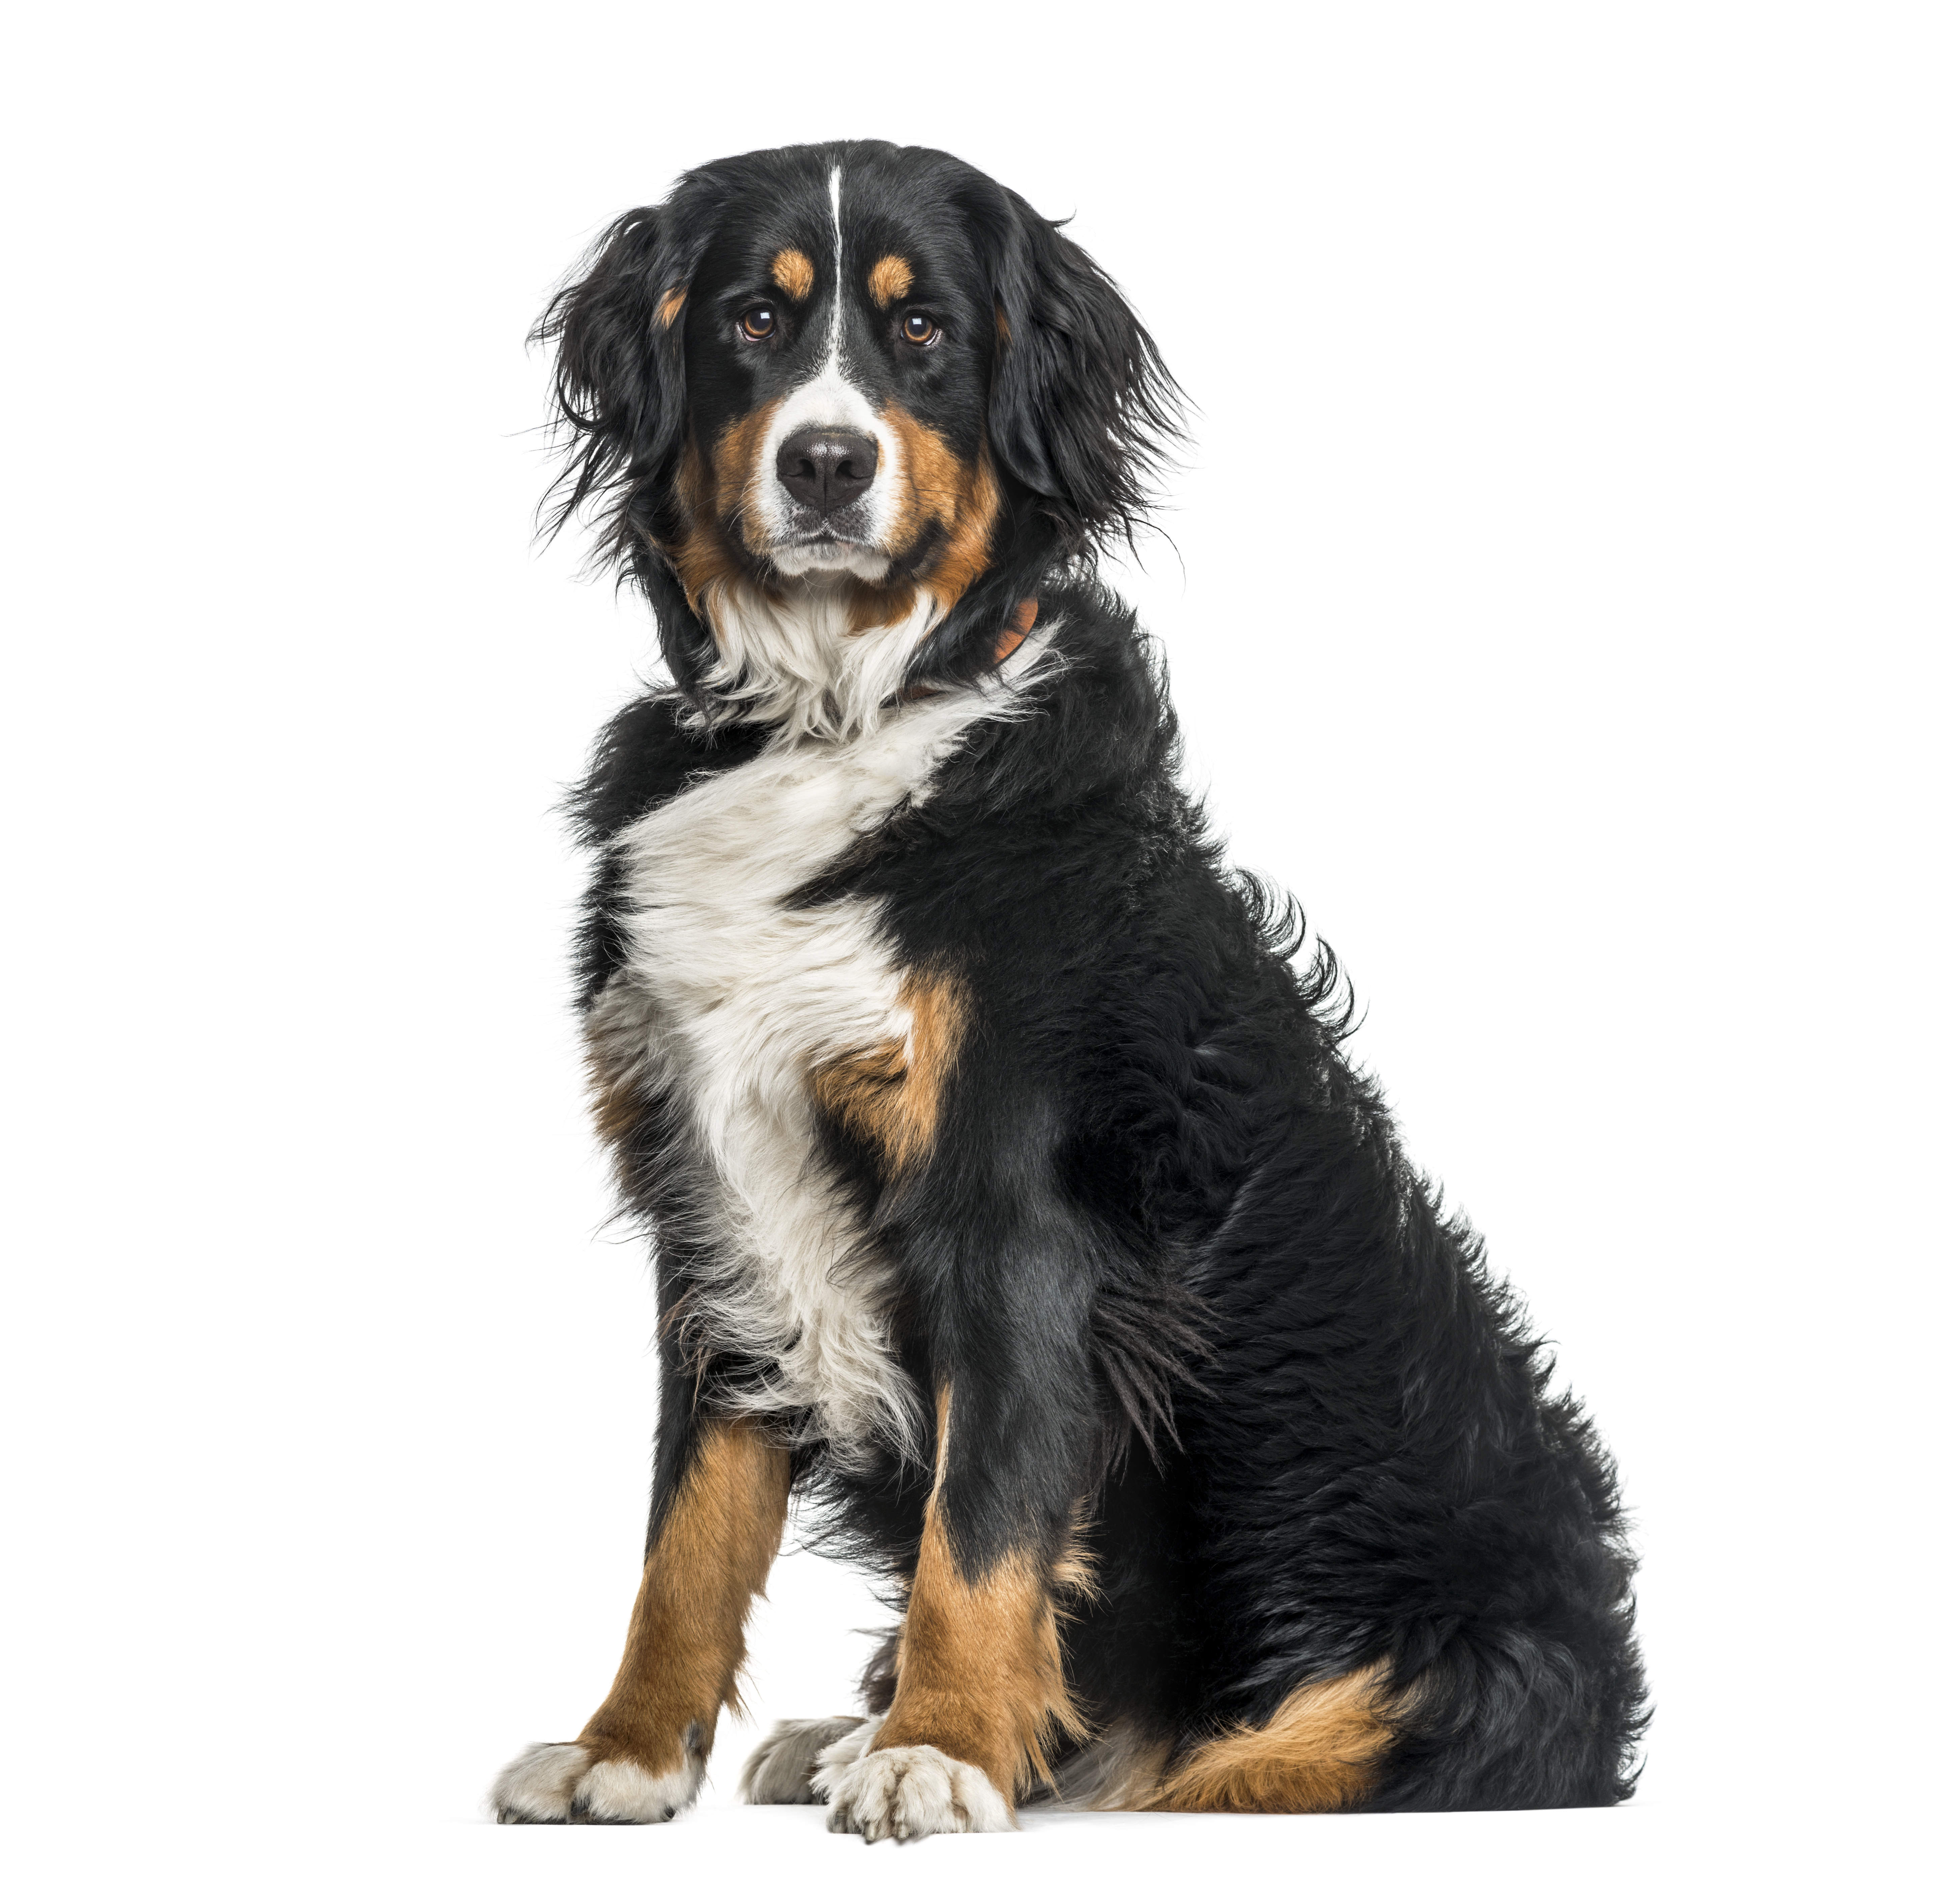 Bernese Mountain dog ditting in front of white background.